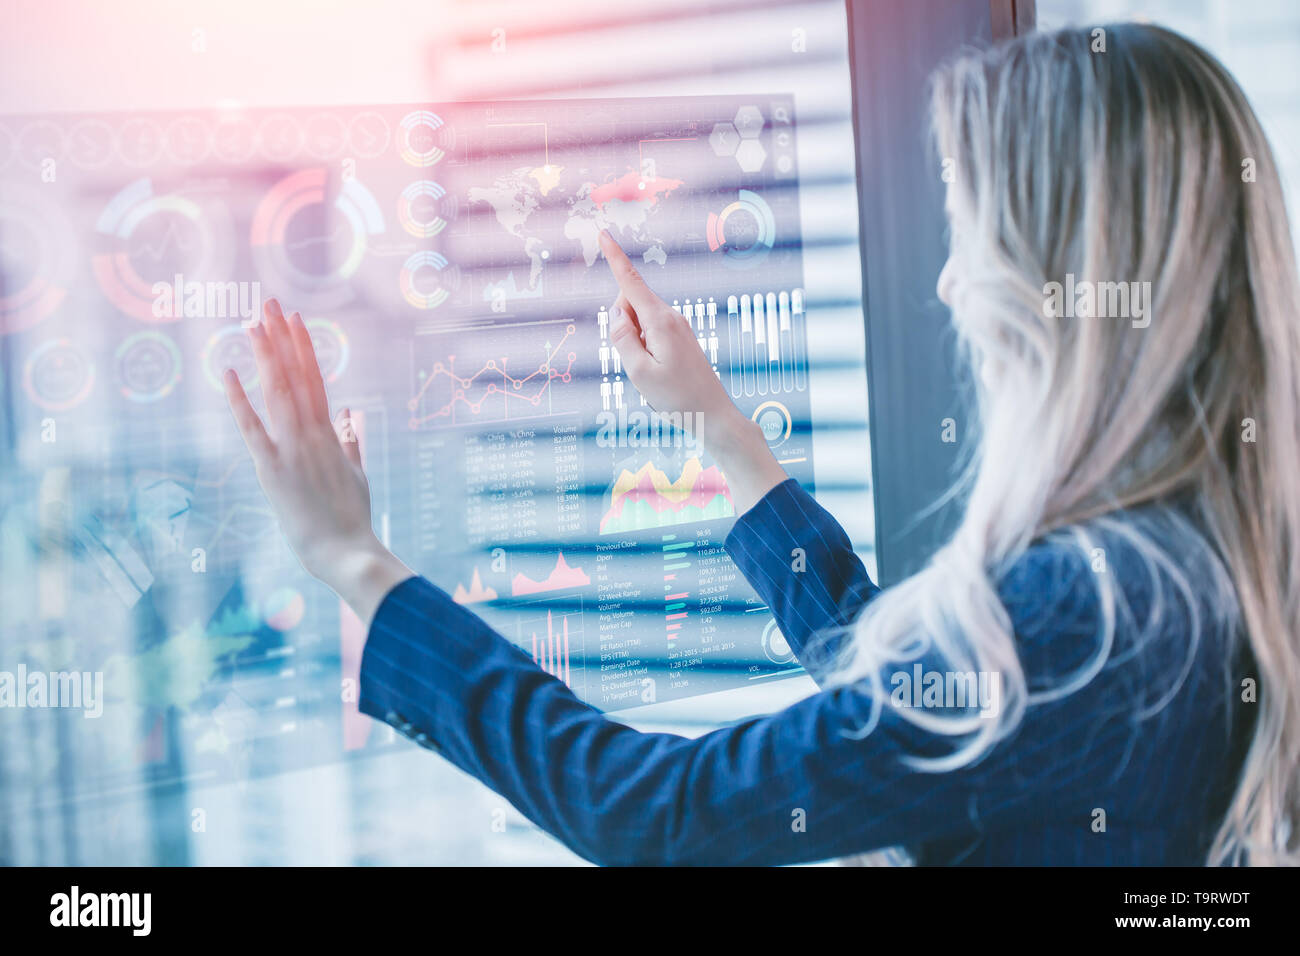 Future of Business Concept, Image of businesswoman touching hologram screen mix media information chart overlay city background Stock Photo